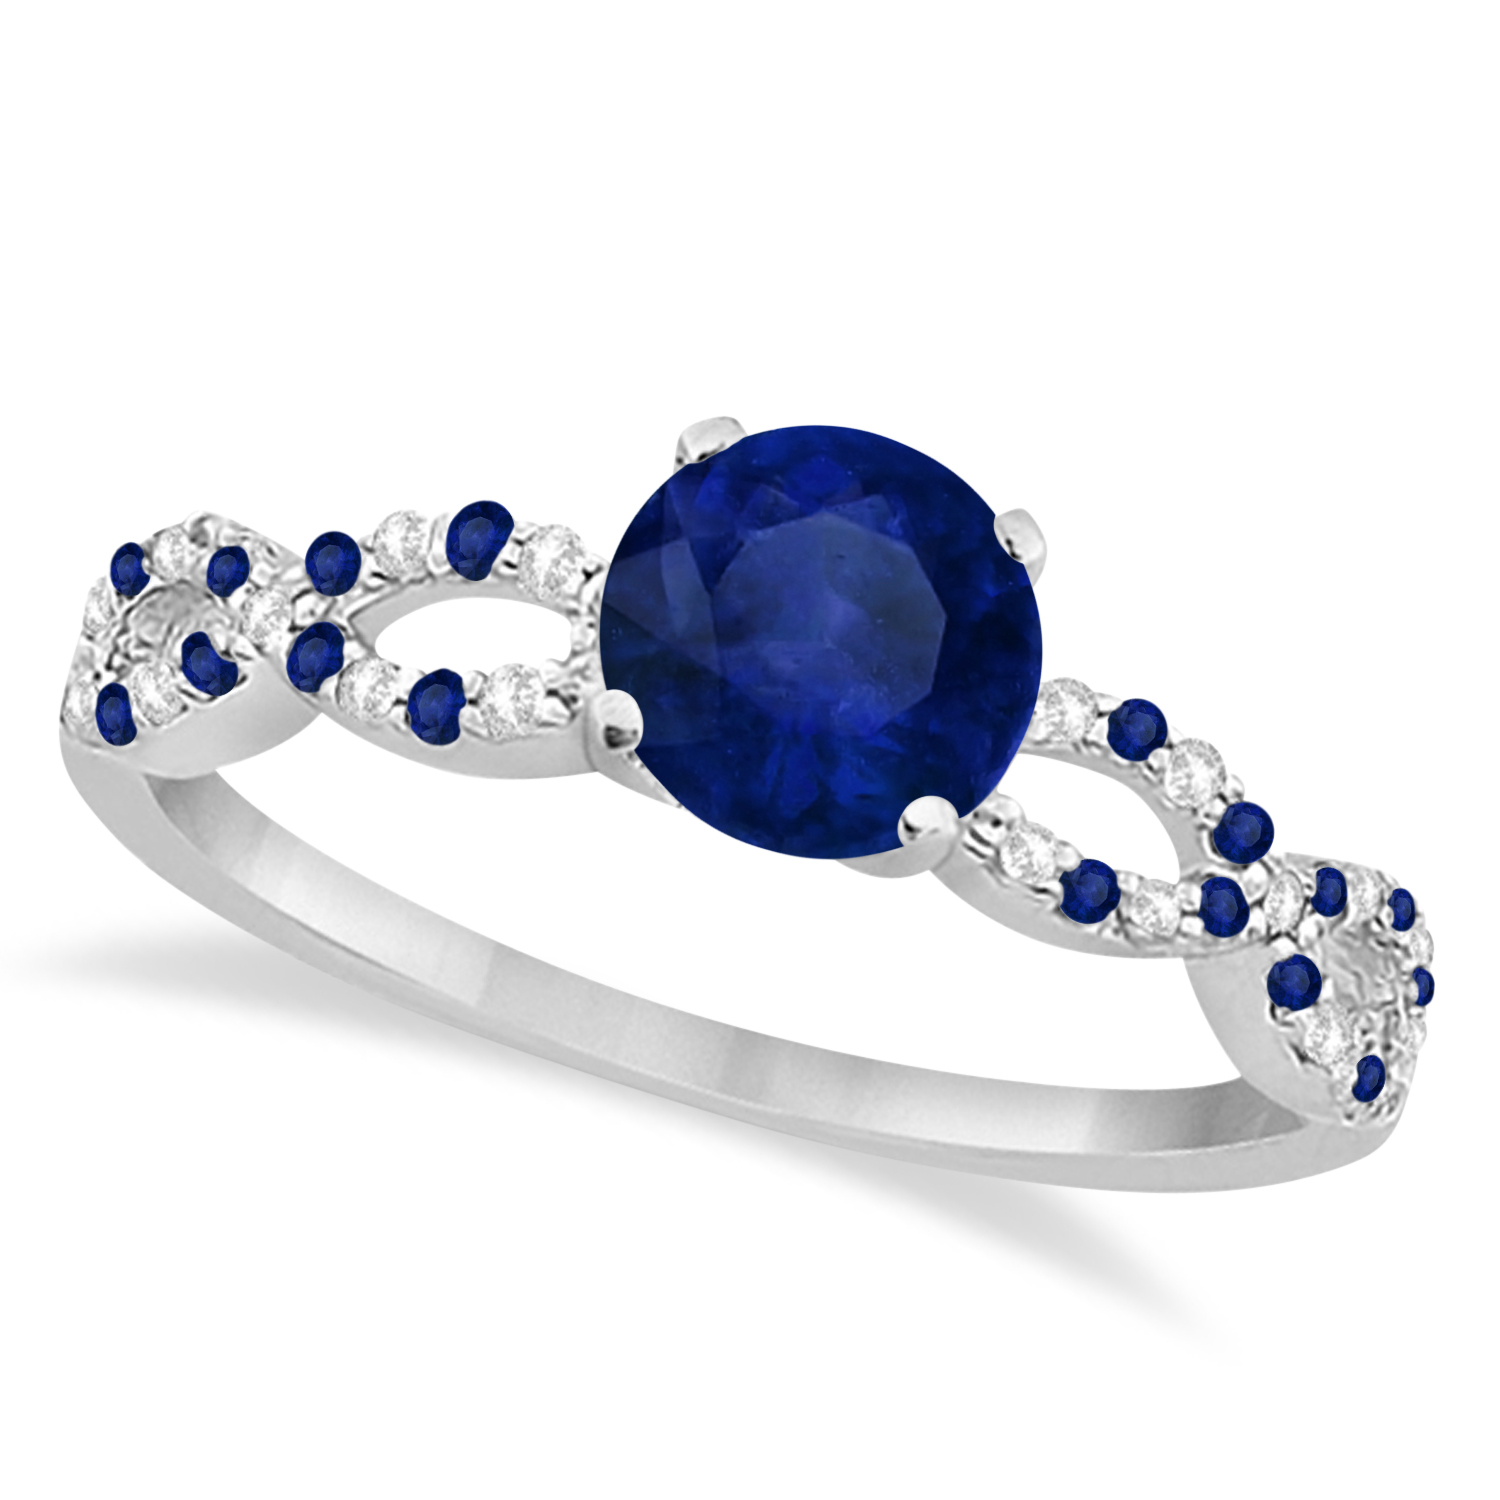 Infinity Style Blue Sapphire & Diamond Bridal Set 14k W. Gold 1.29ct